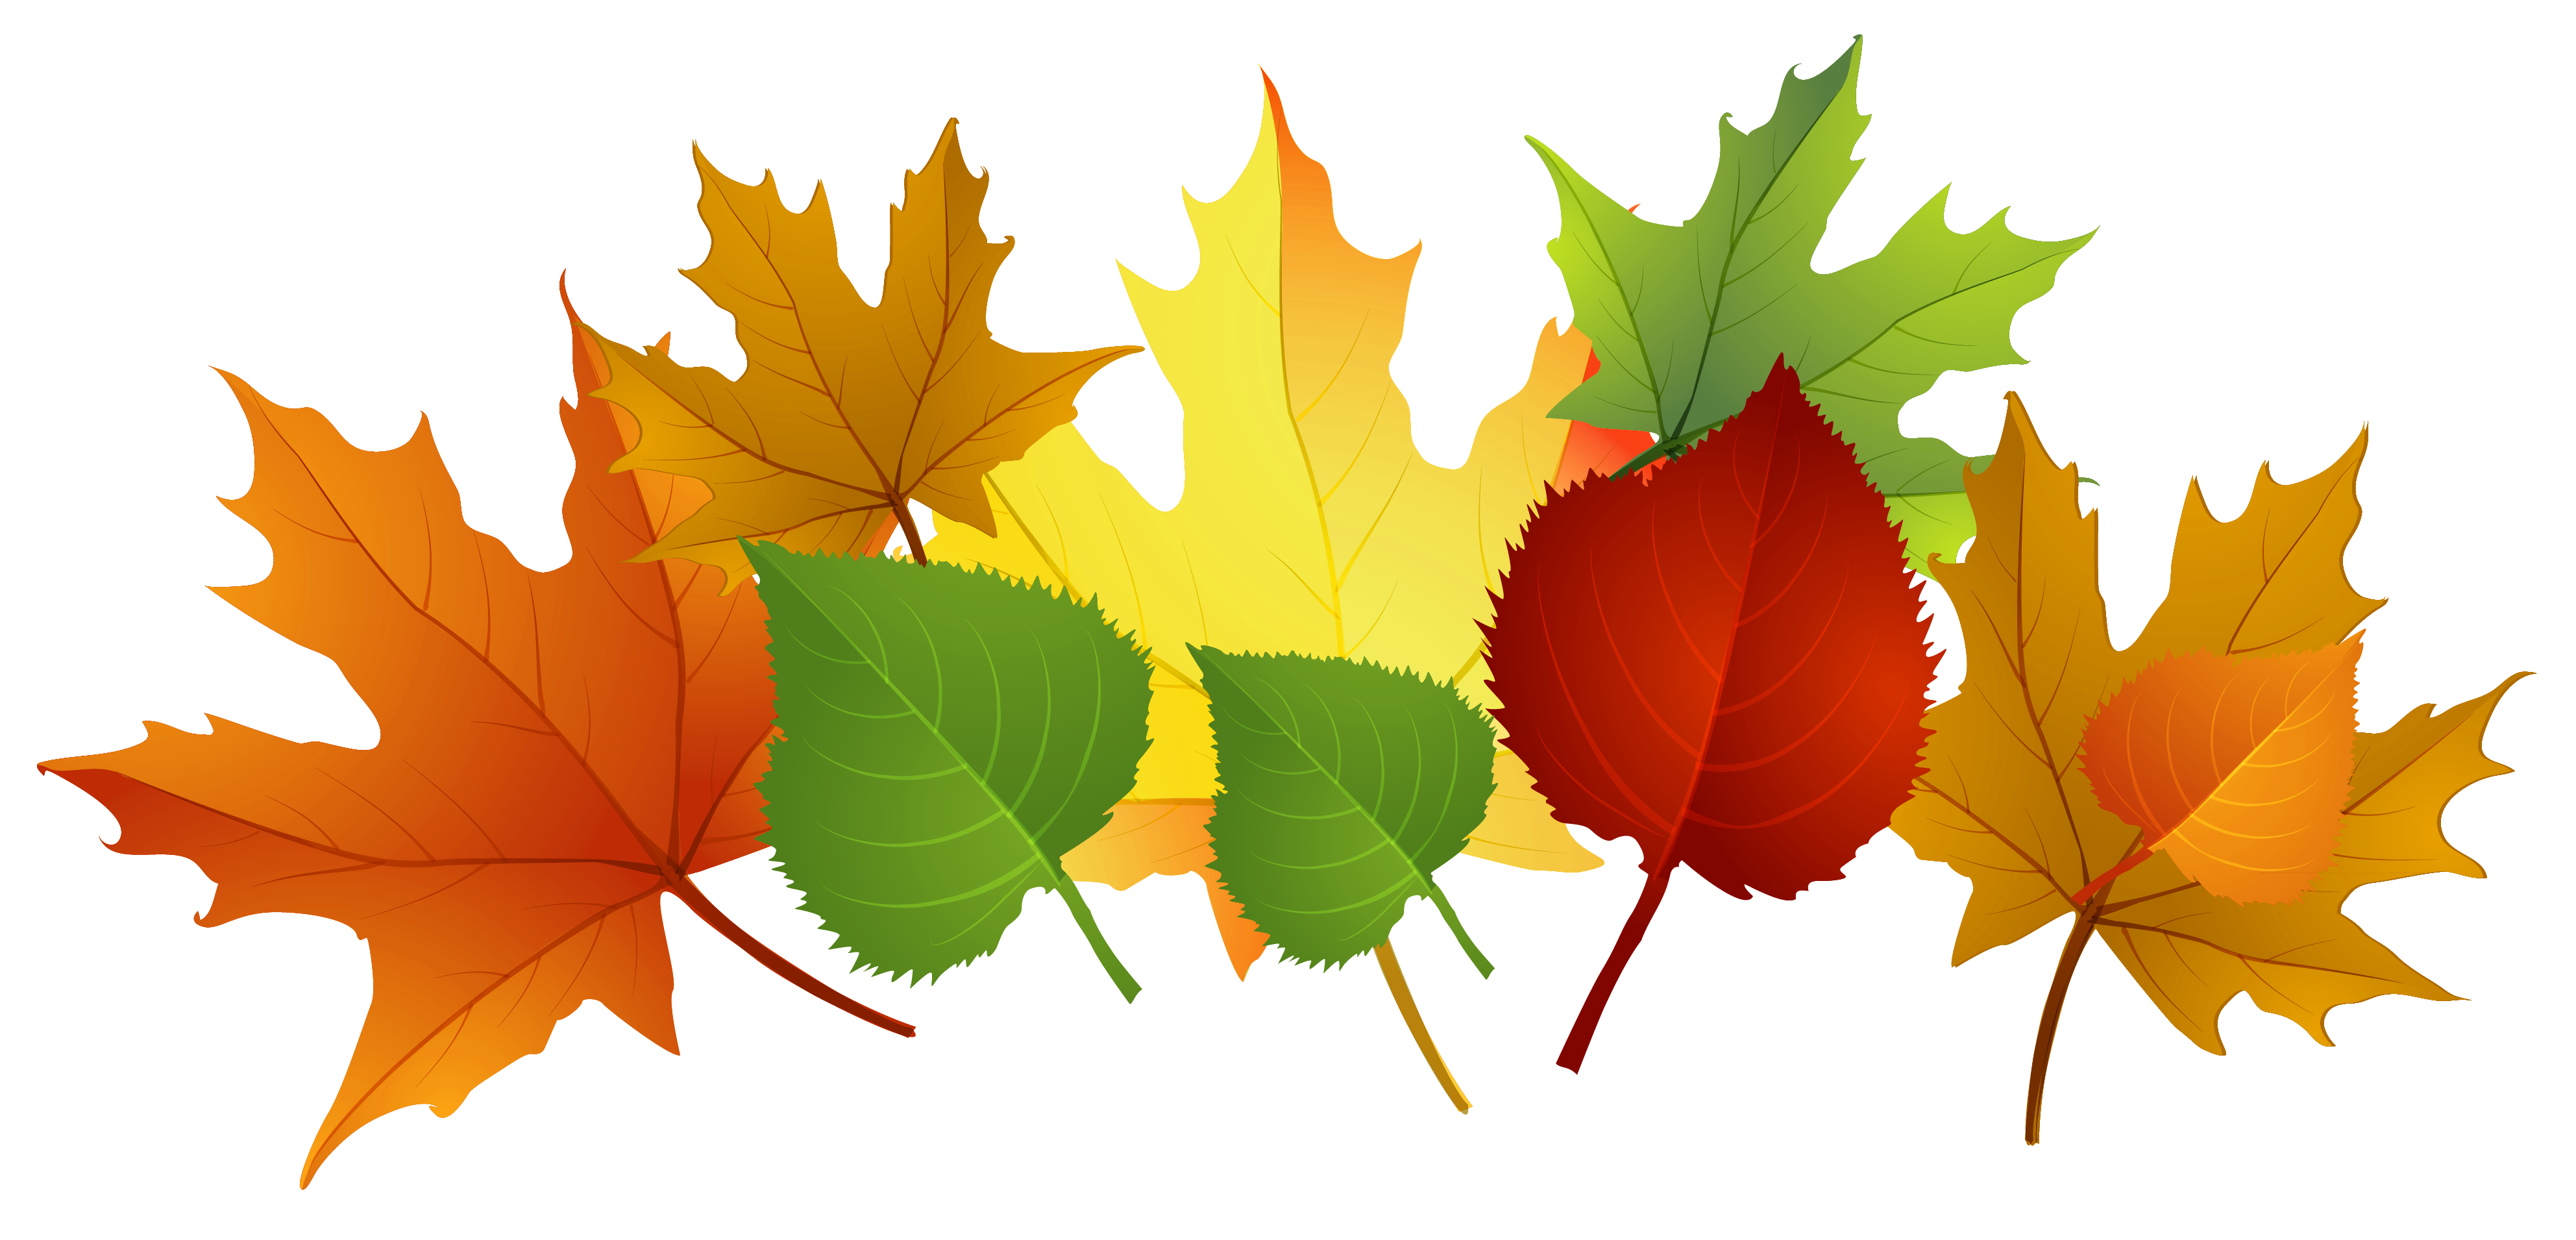 Fall Leaf Clip Art Free Cliparts That Yo-Fall Leaf Clip Art Free Cliparts That You Can Download To You-8